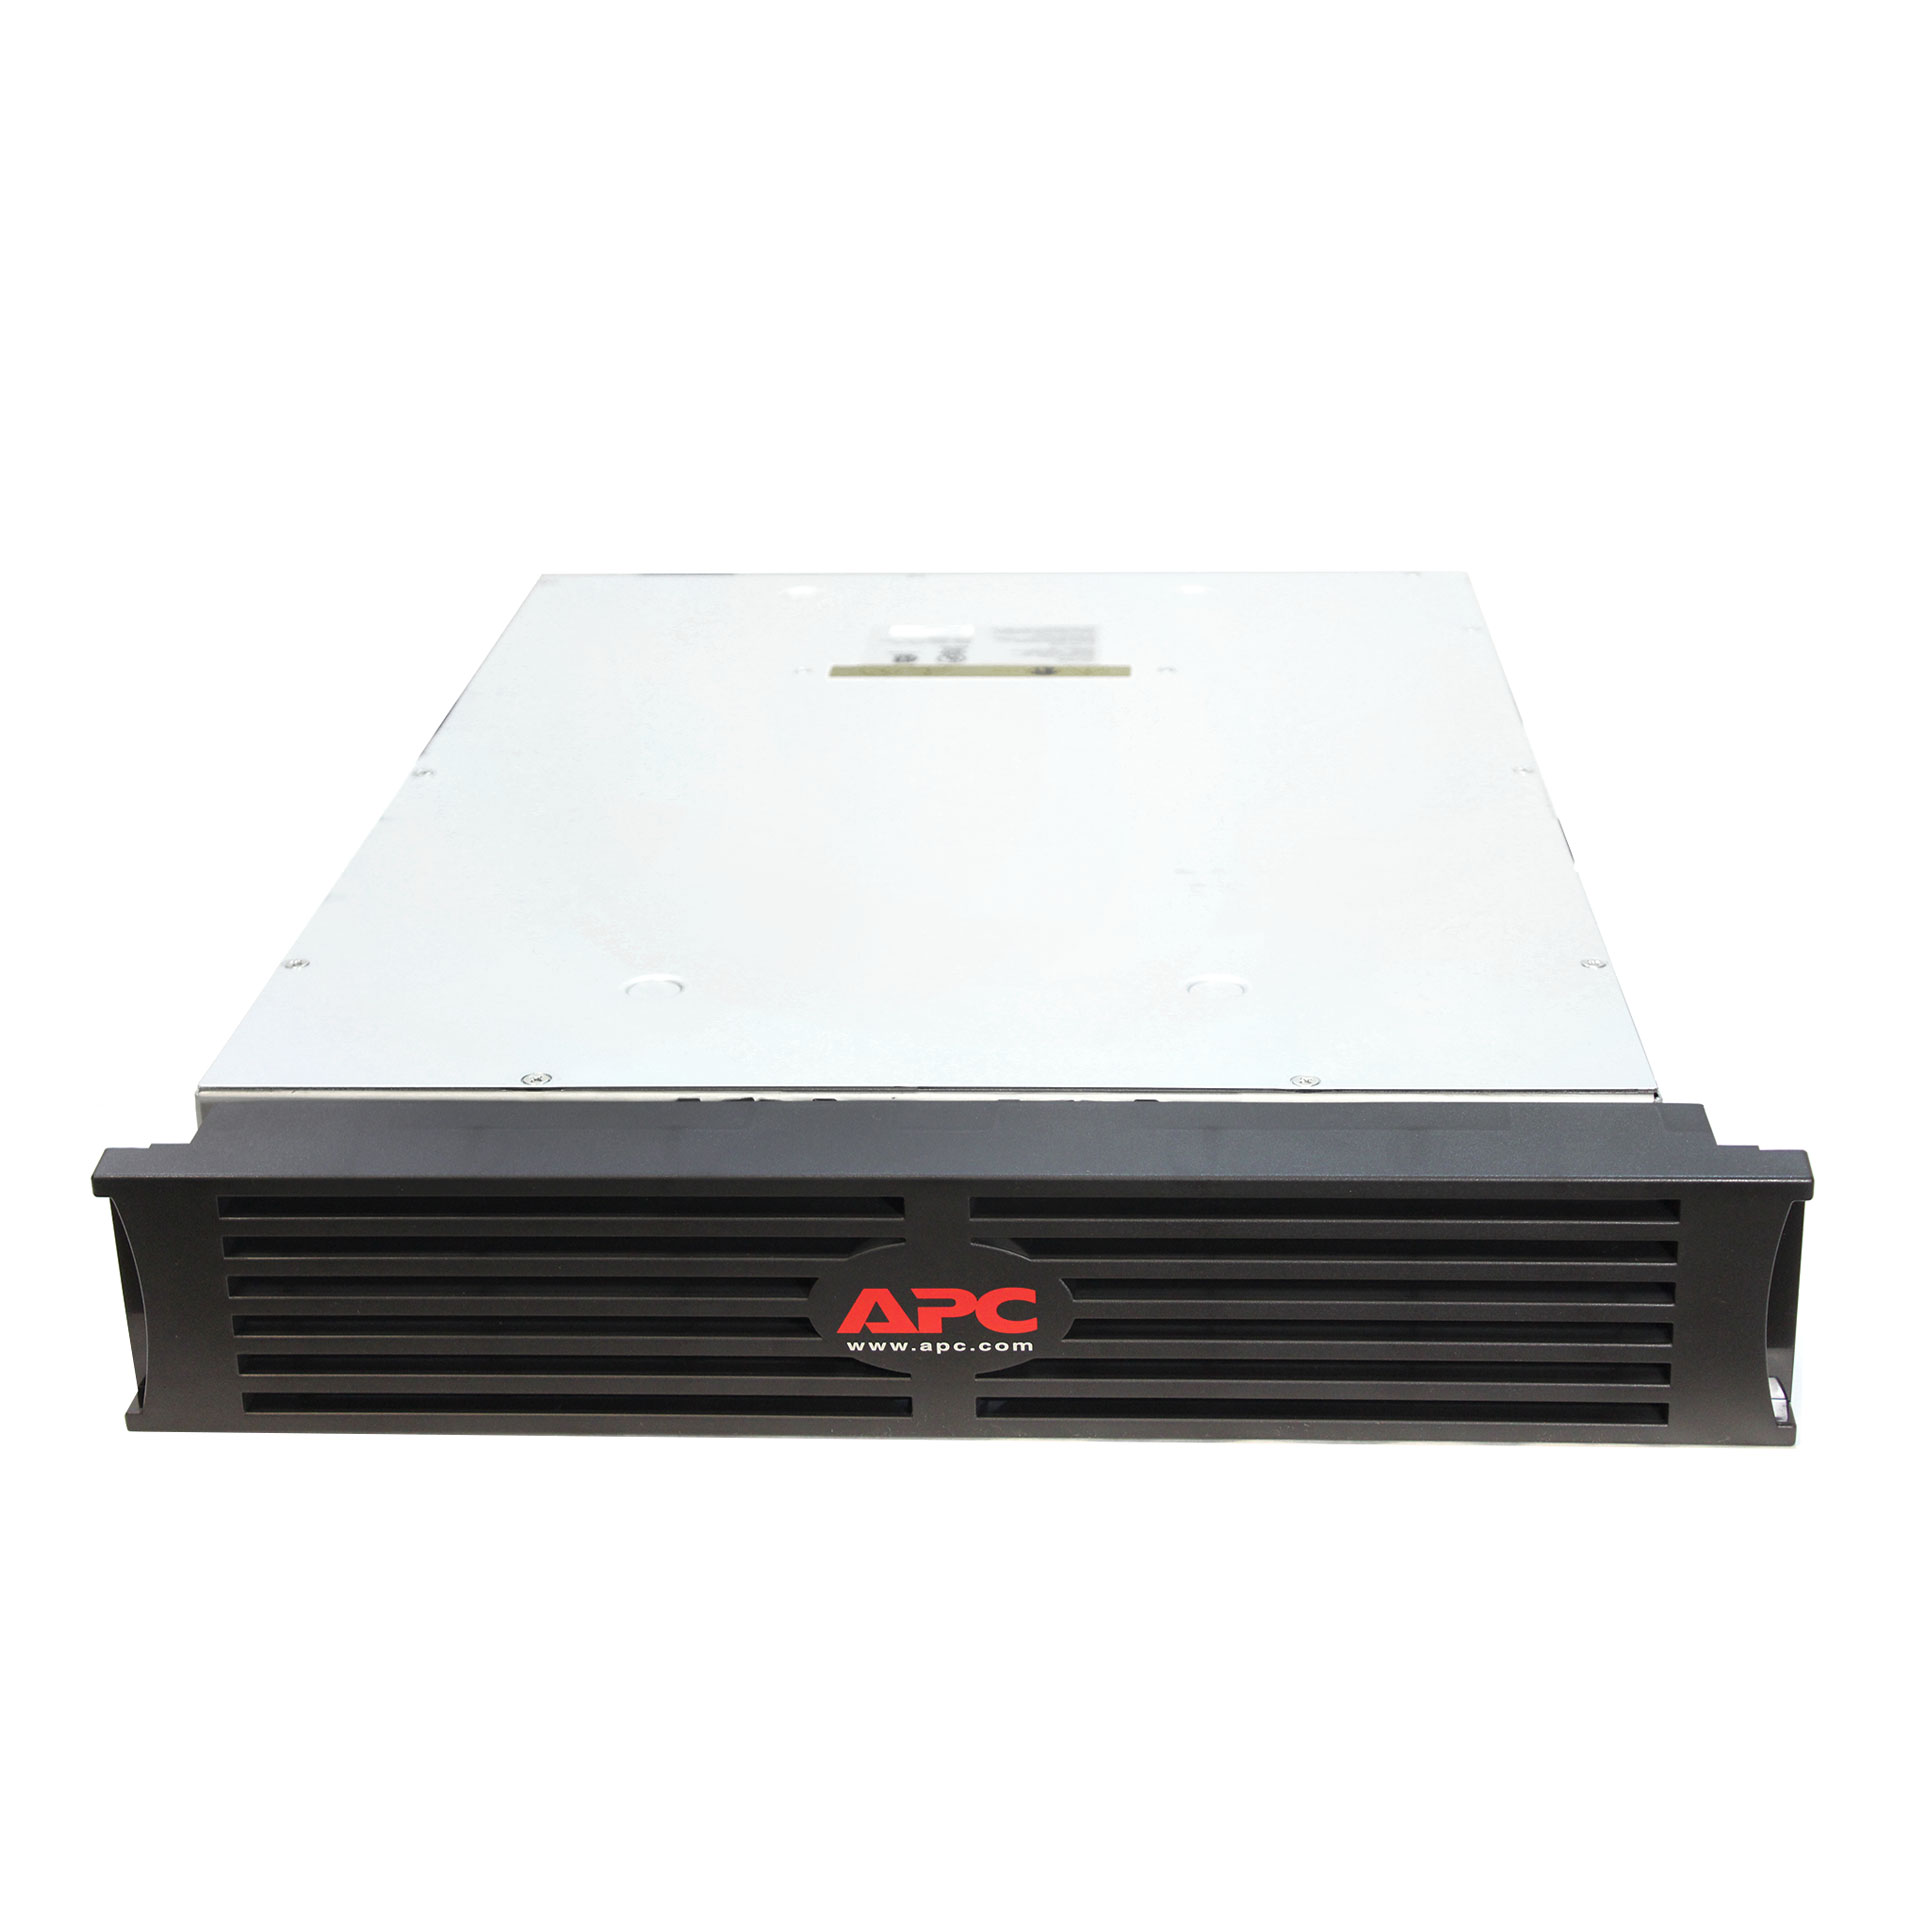 APC AP9627 Step-Down Transformer RM 2U 5000VA 208V IN 120V OUT#